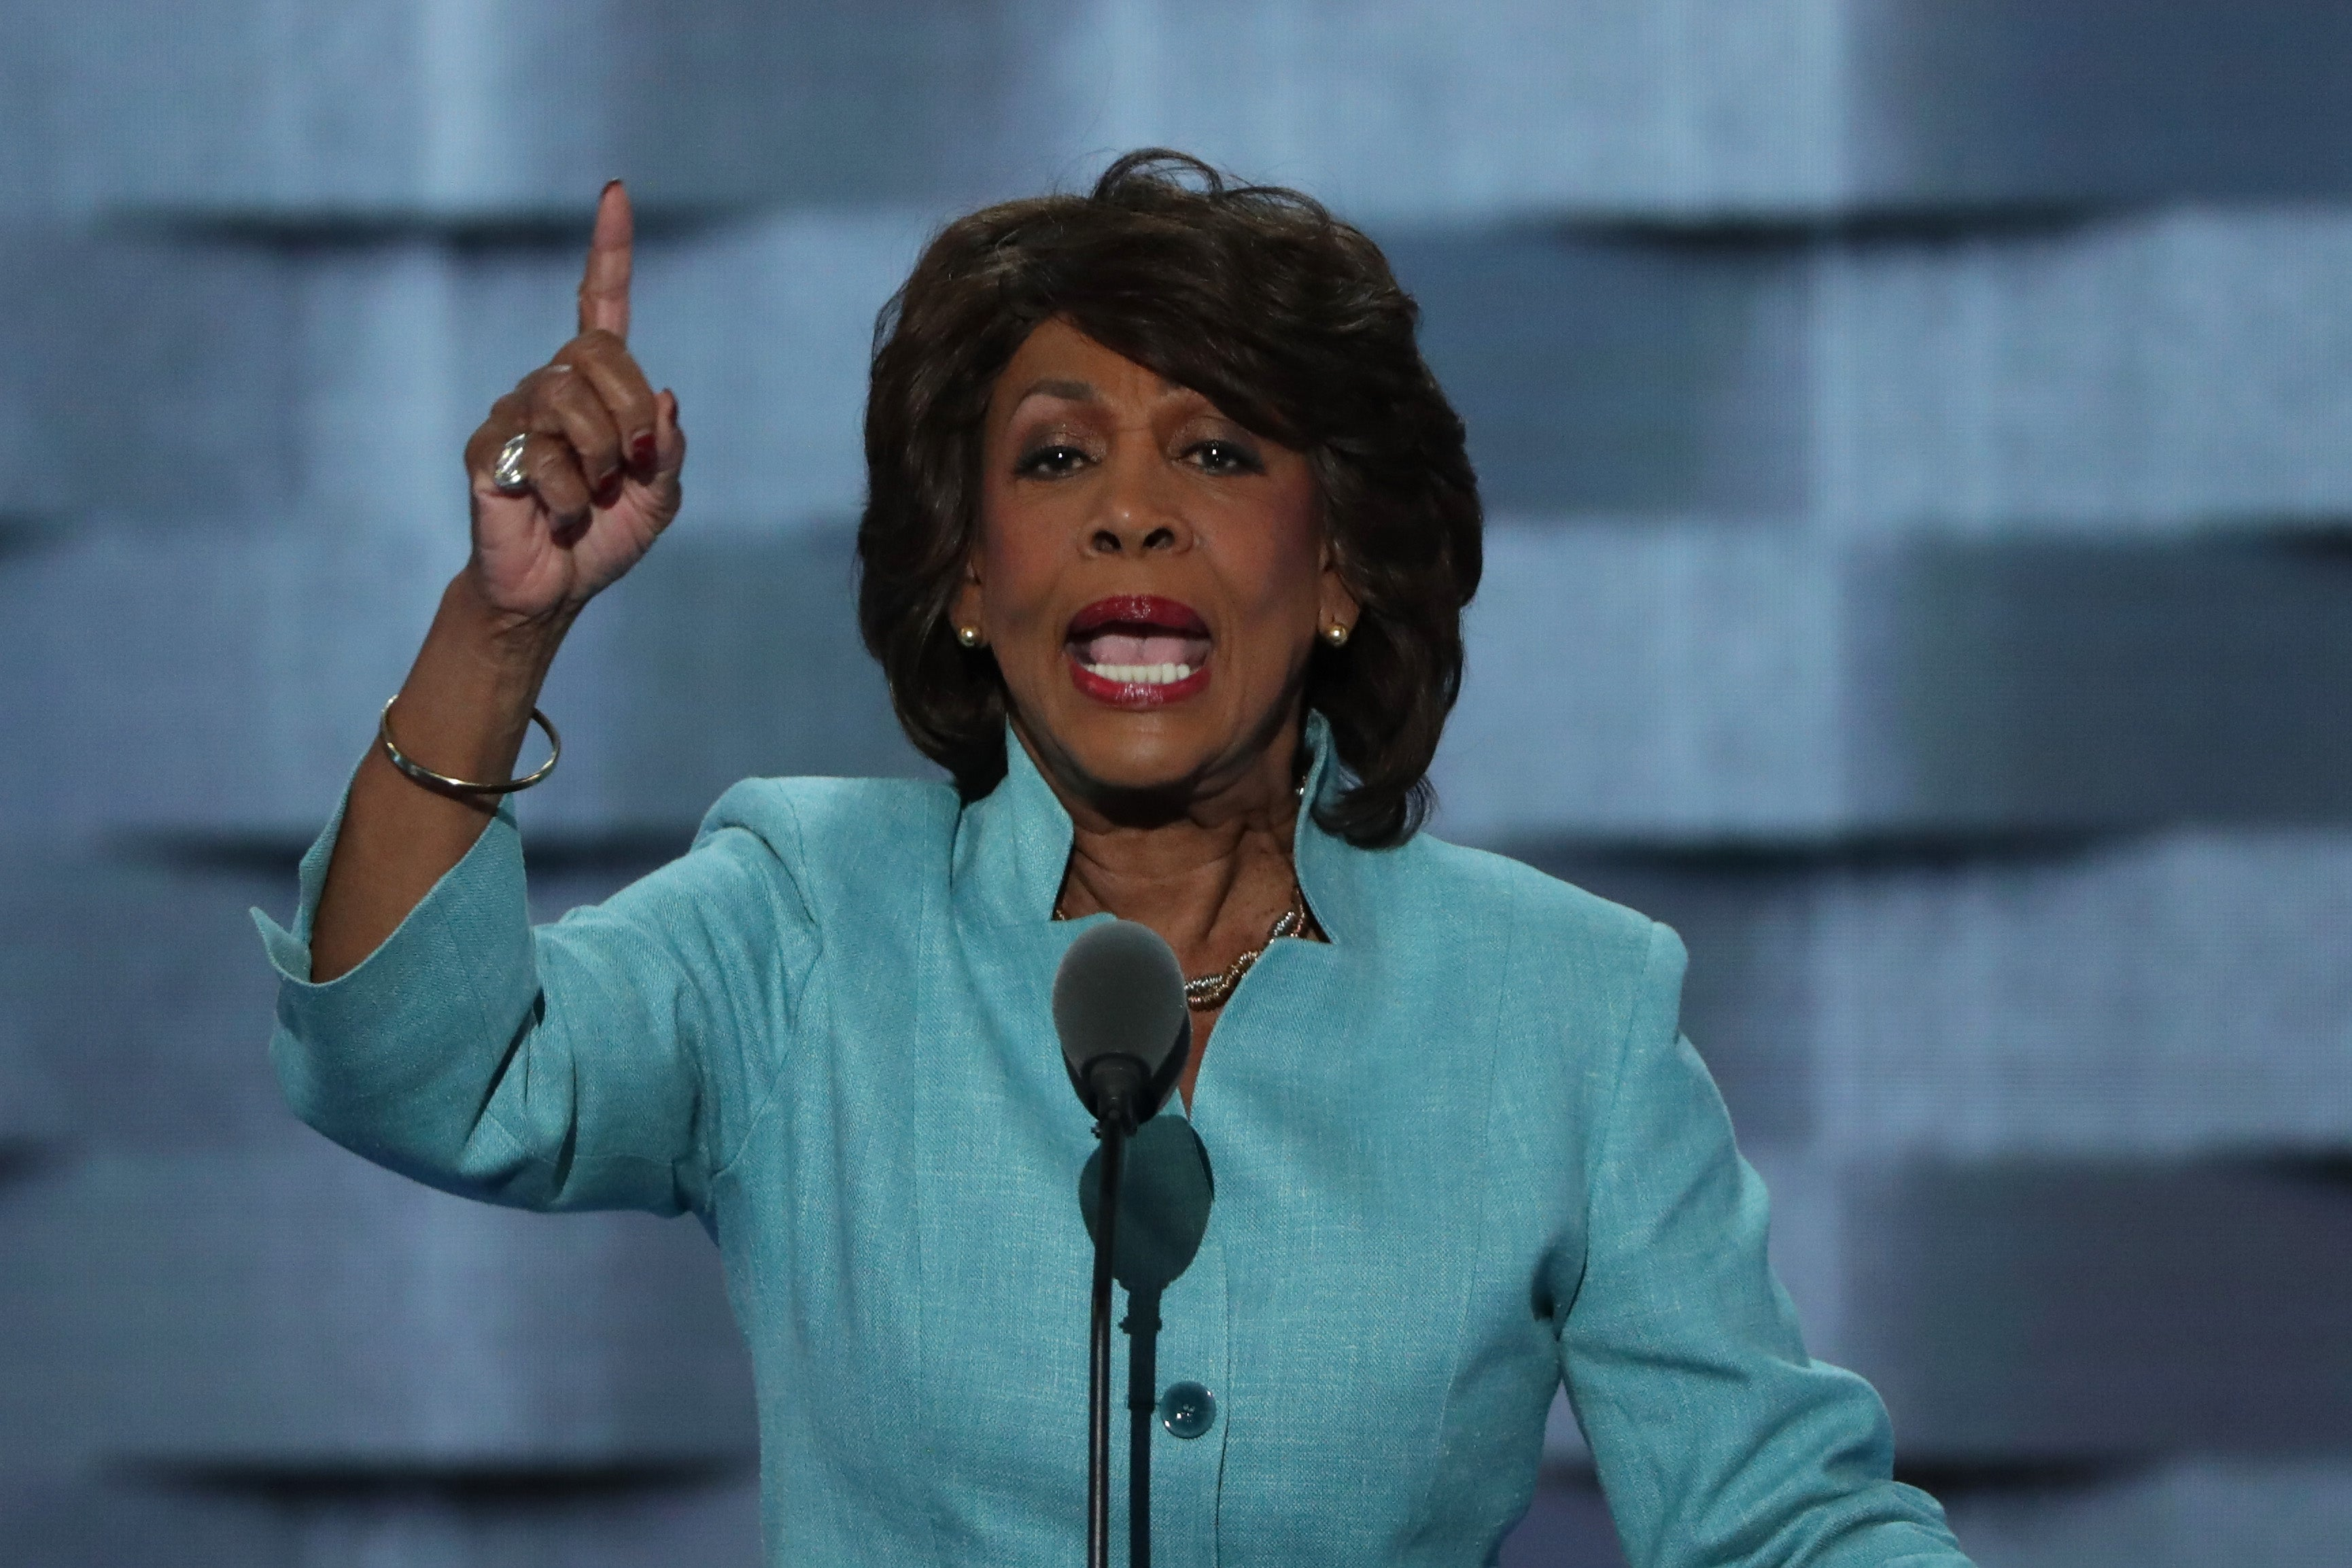 Congresswoman Maxine Waters Says She's Not Backing Down From Her Goal To Have Trump Impeached - Essence